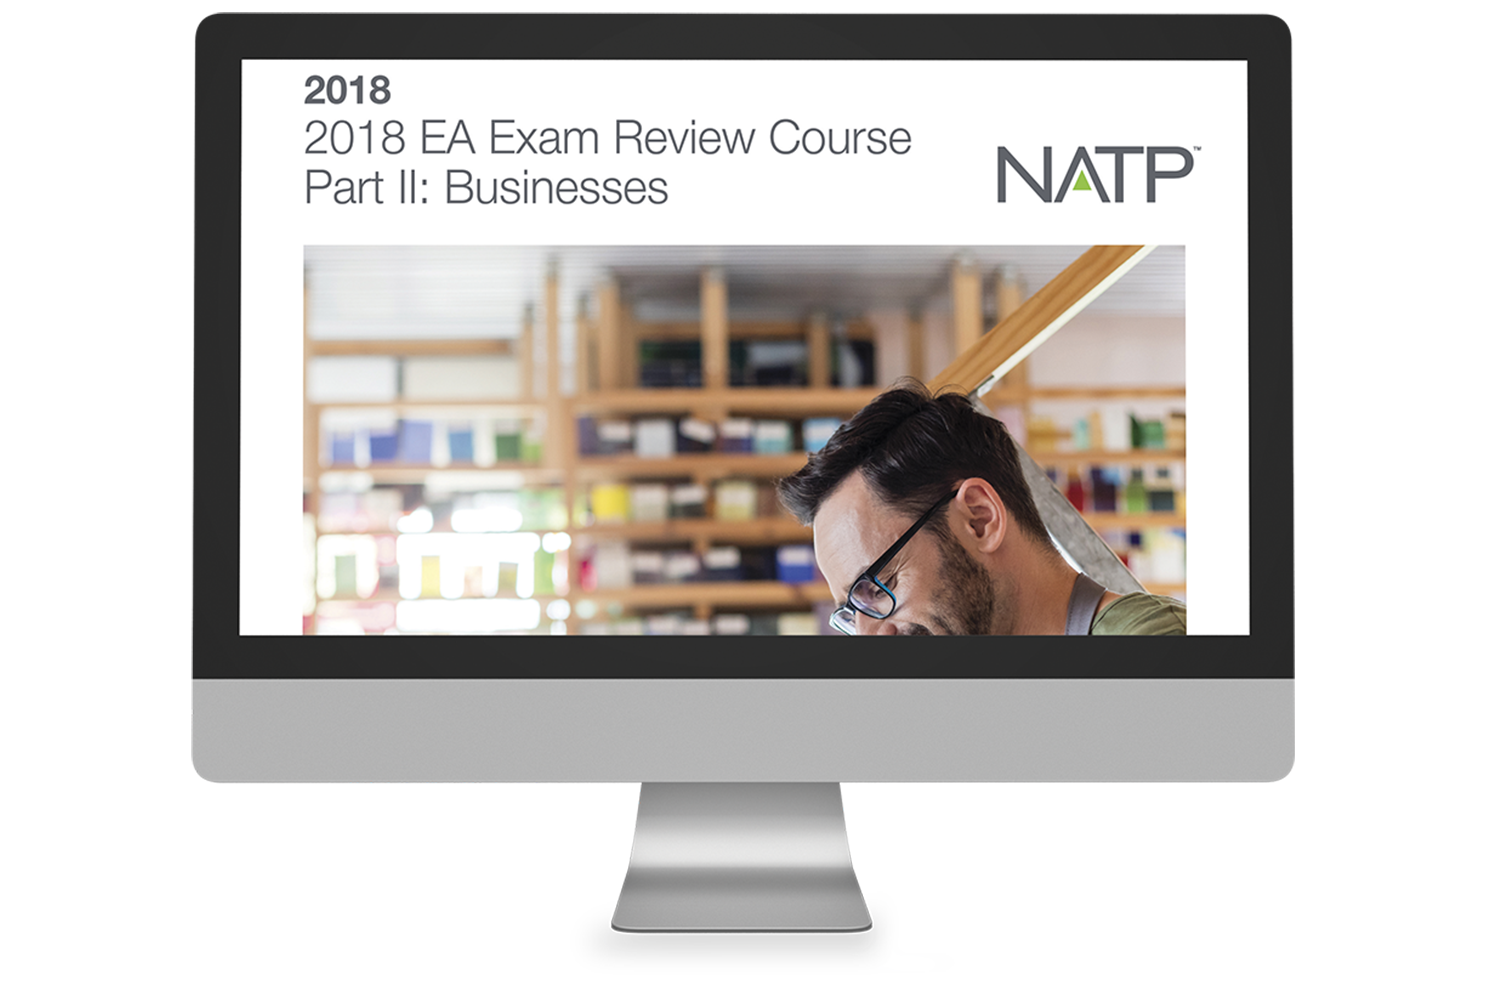 EA Exam Review Course Part II Textbook (2018) - Electronic PDF Version - #E3804